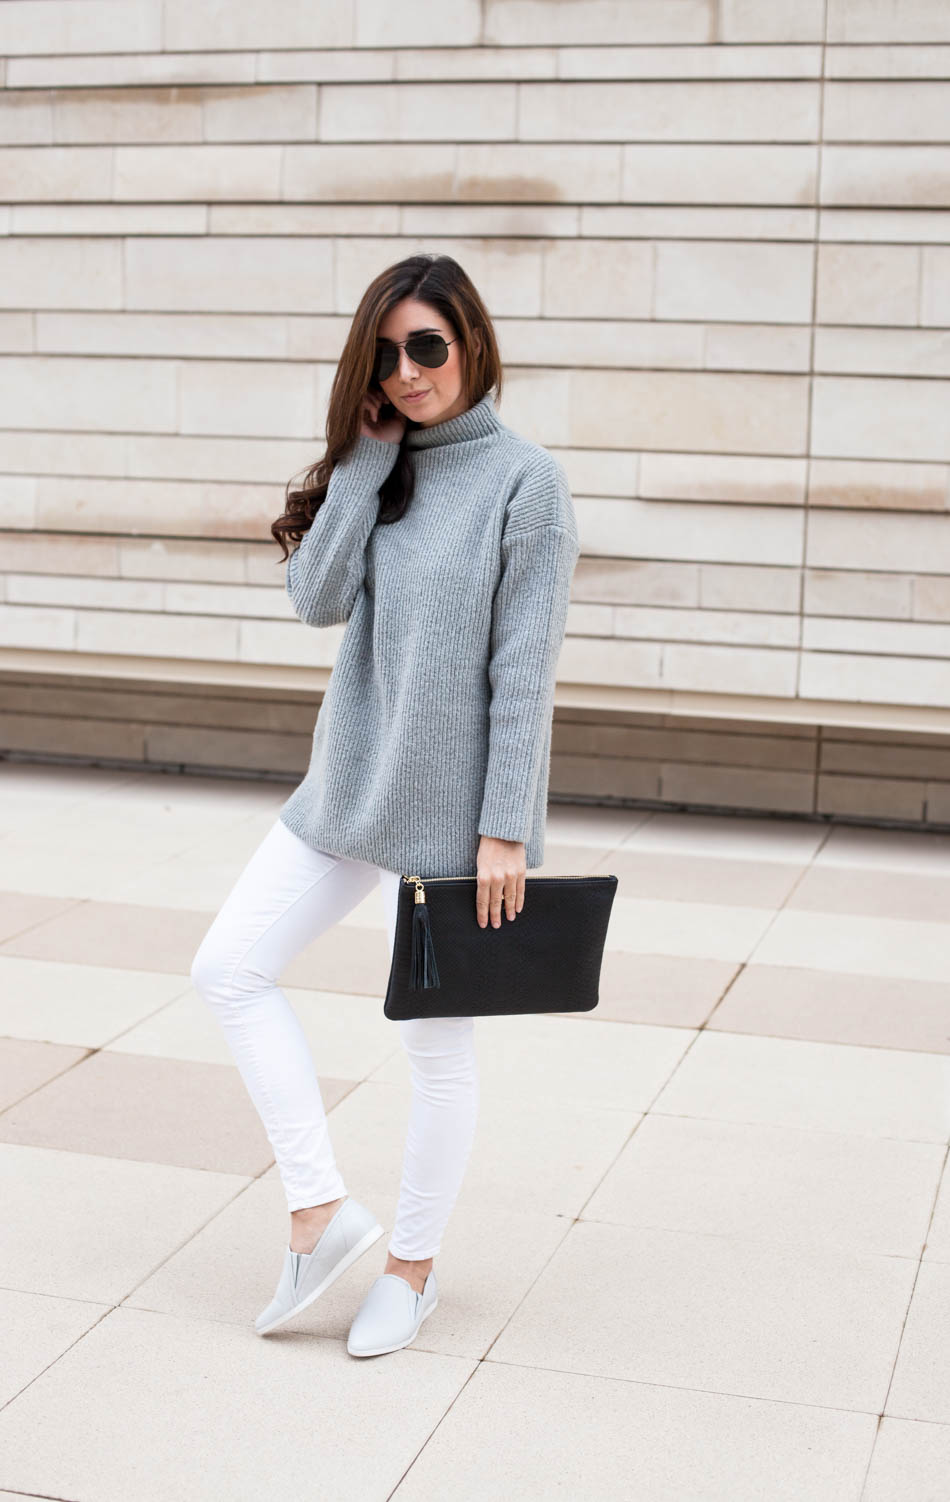 Minimal: When less is definitely more